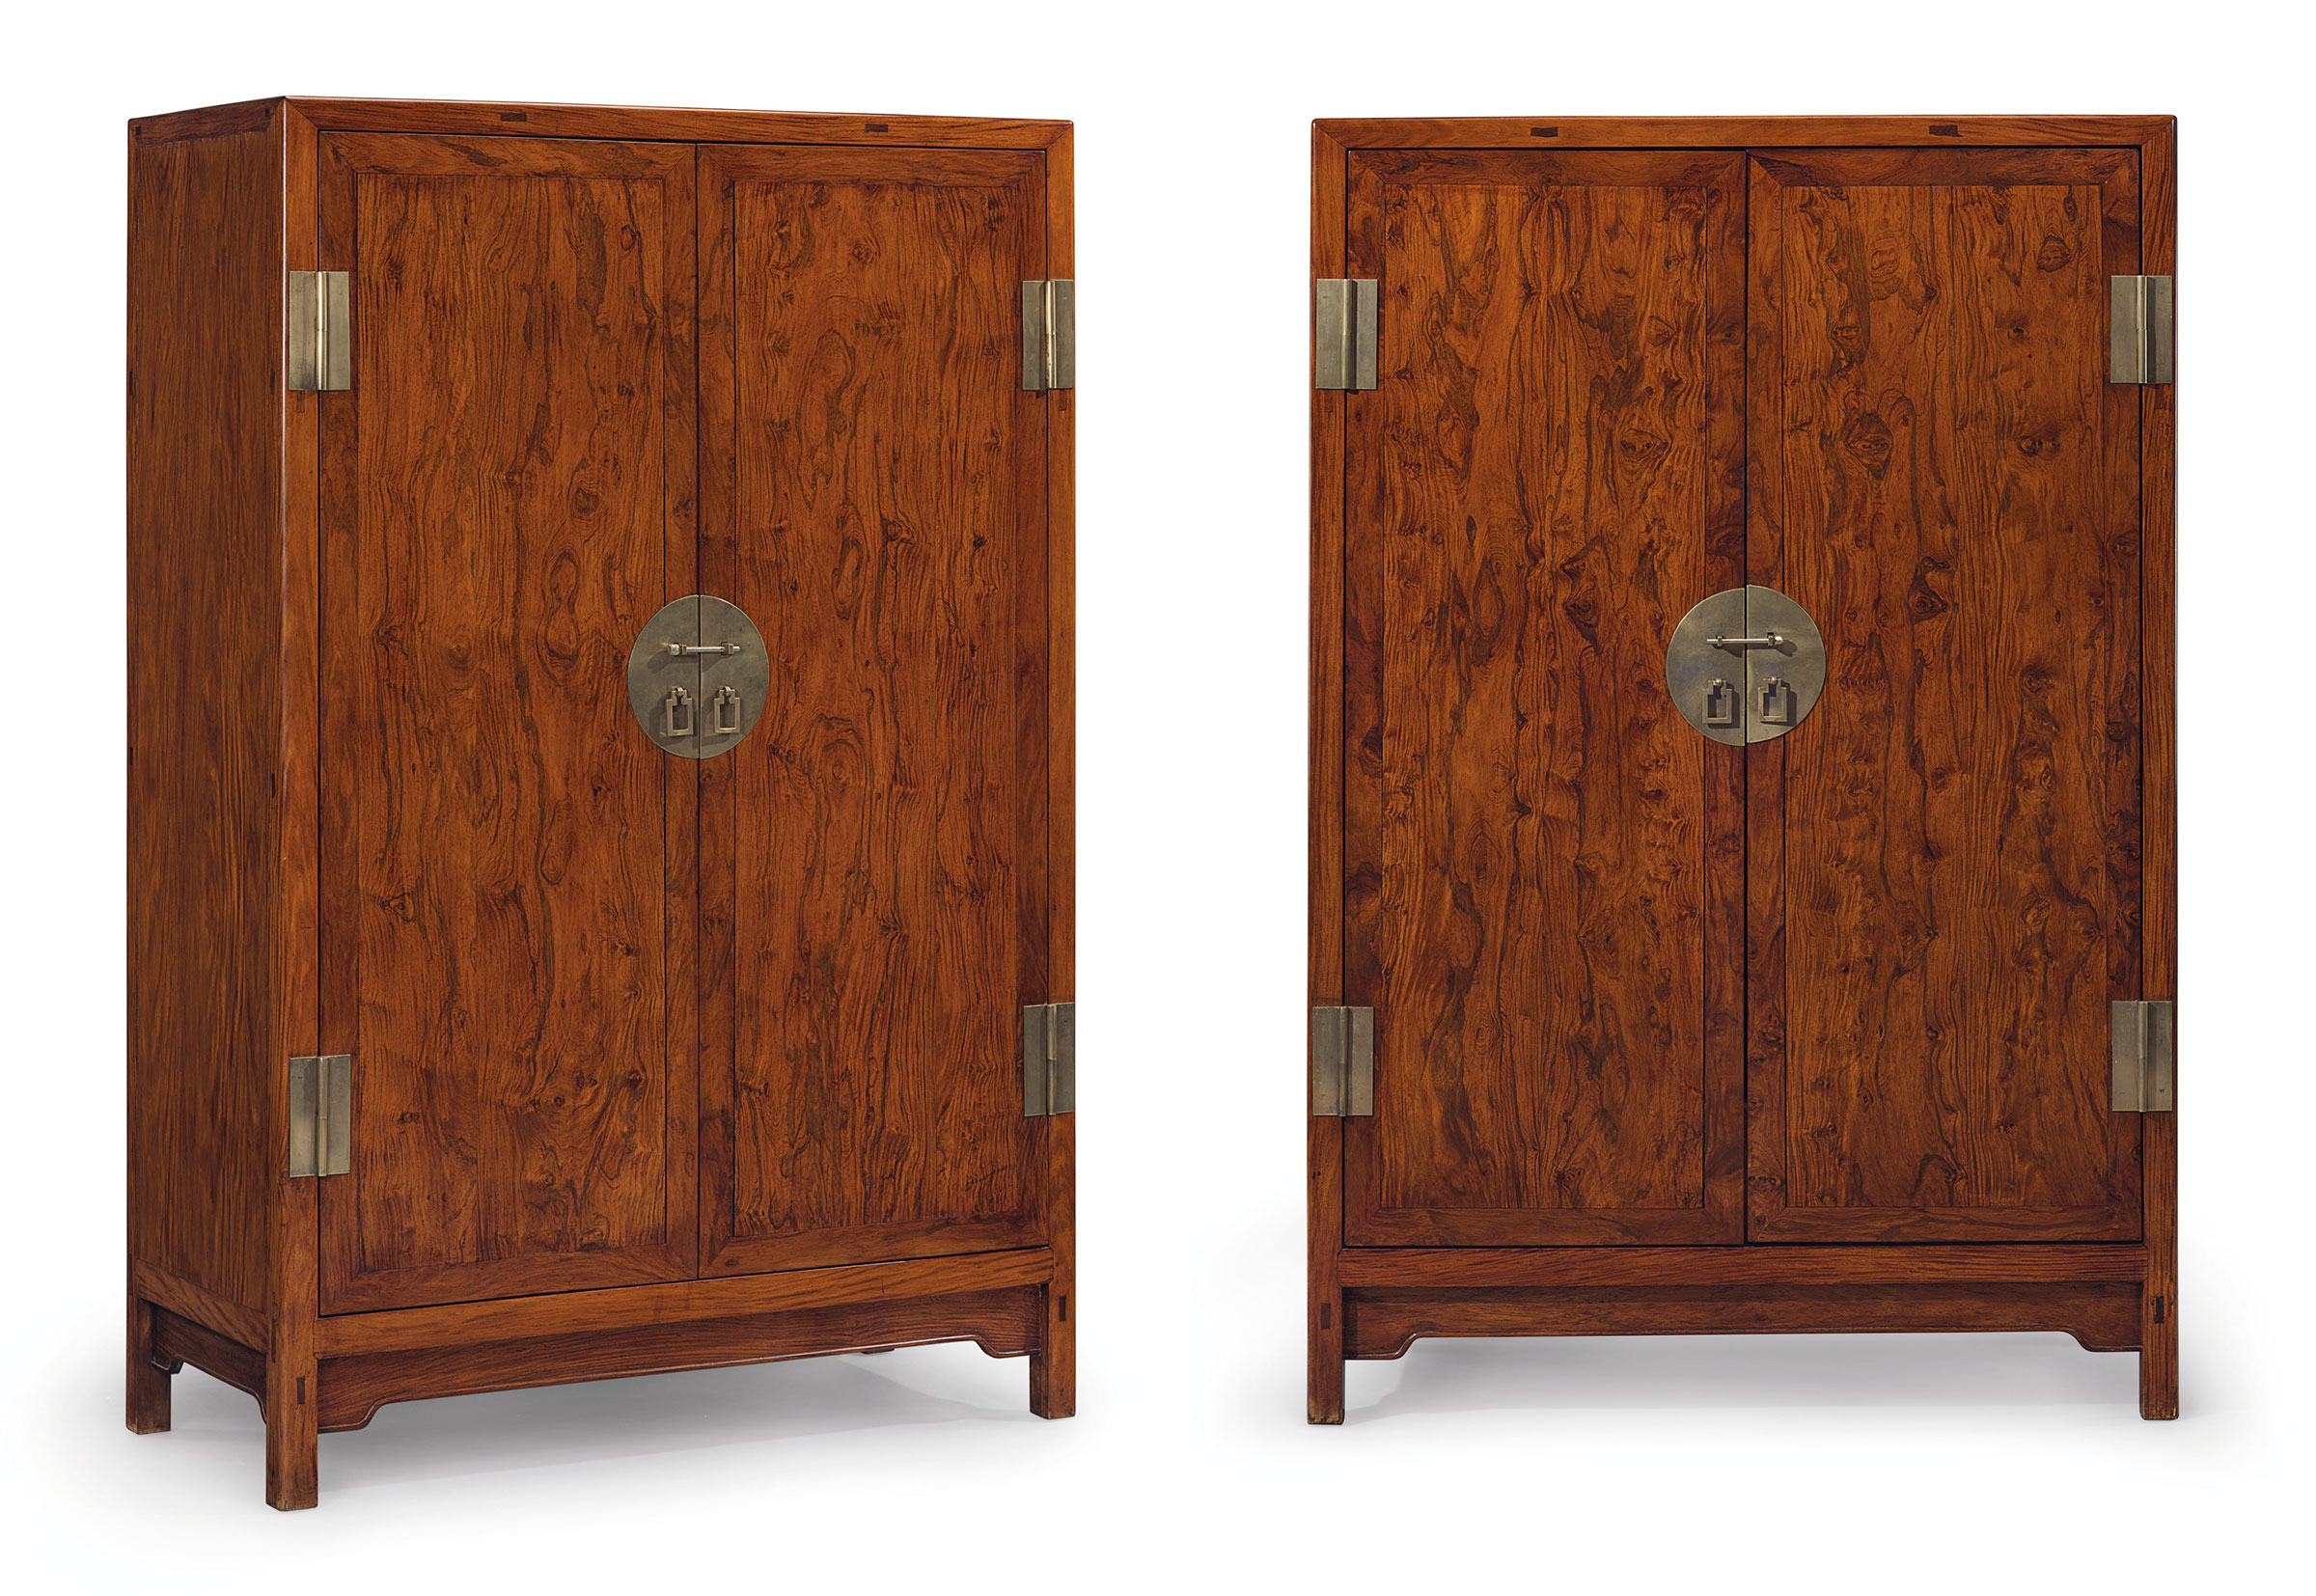 A Superb And Very Rare Pair Of Huanghuali Square Corner Cabinets,  Fangjiaogui, 17th